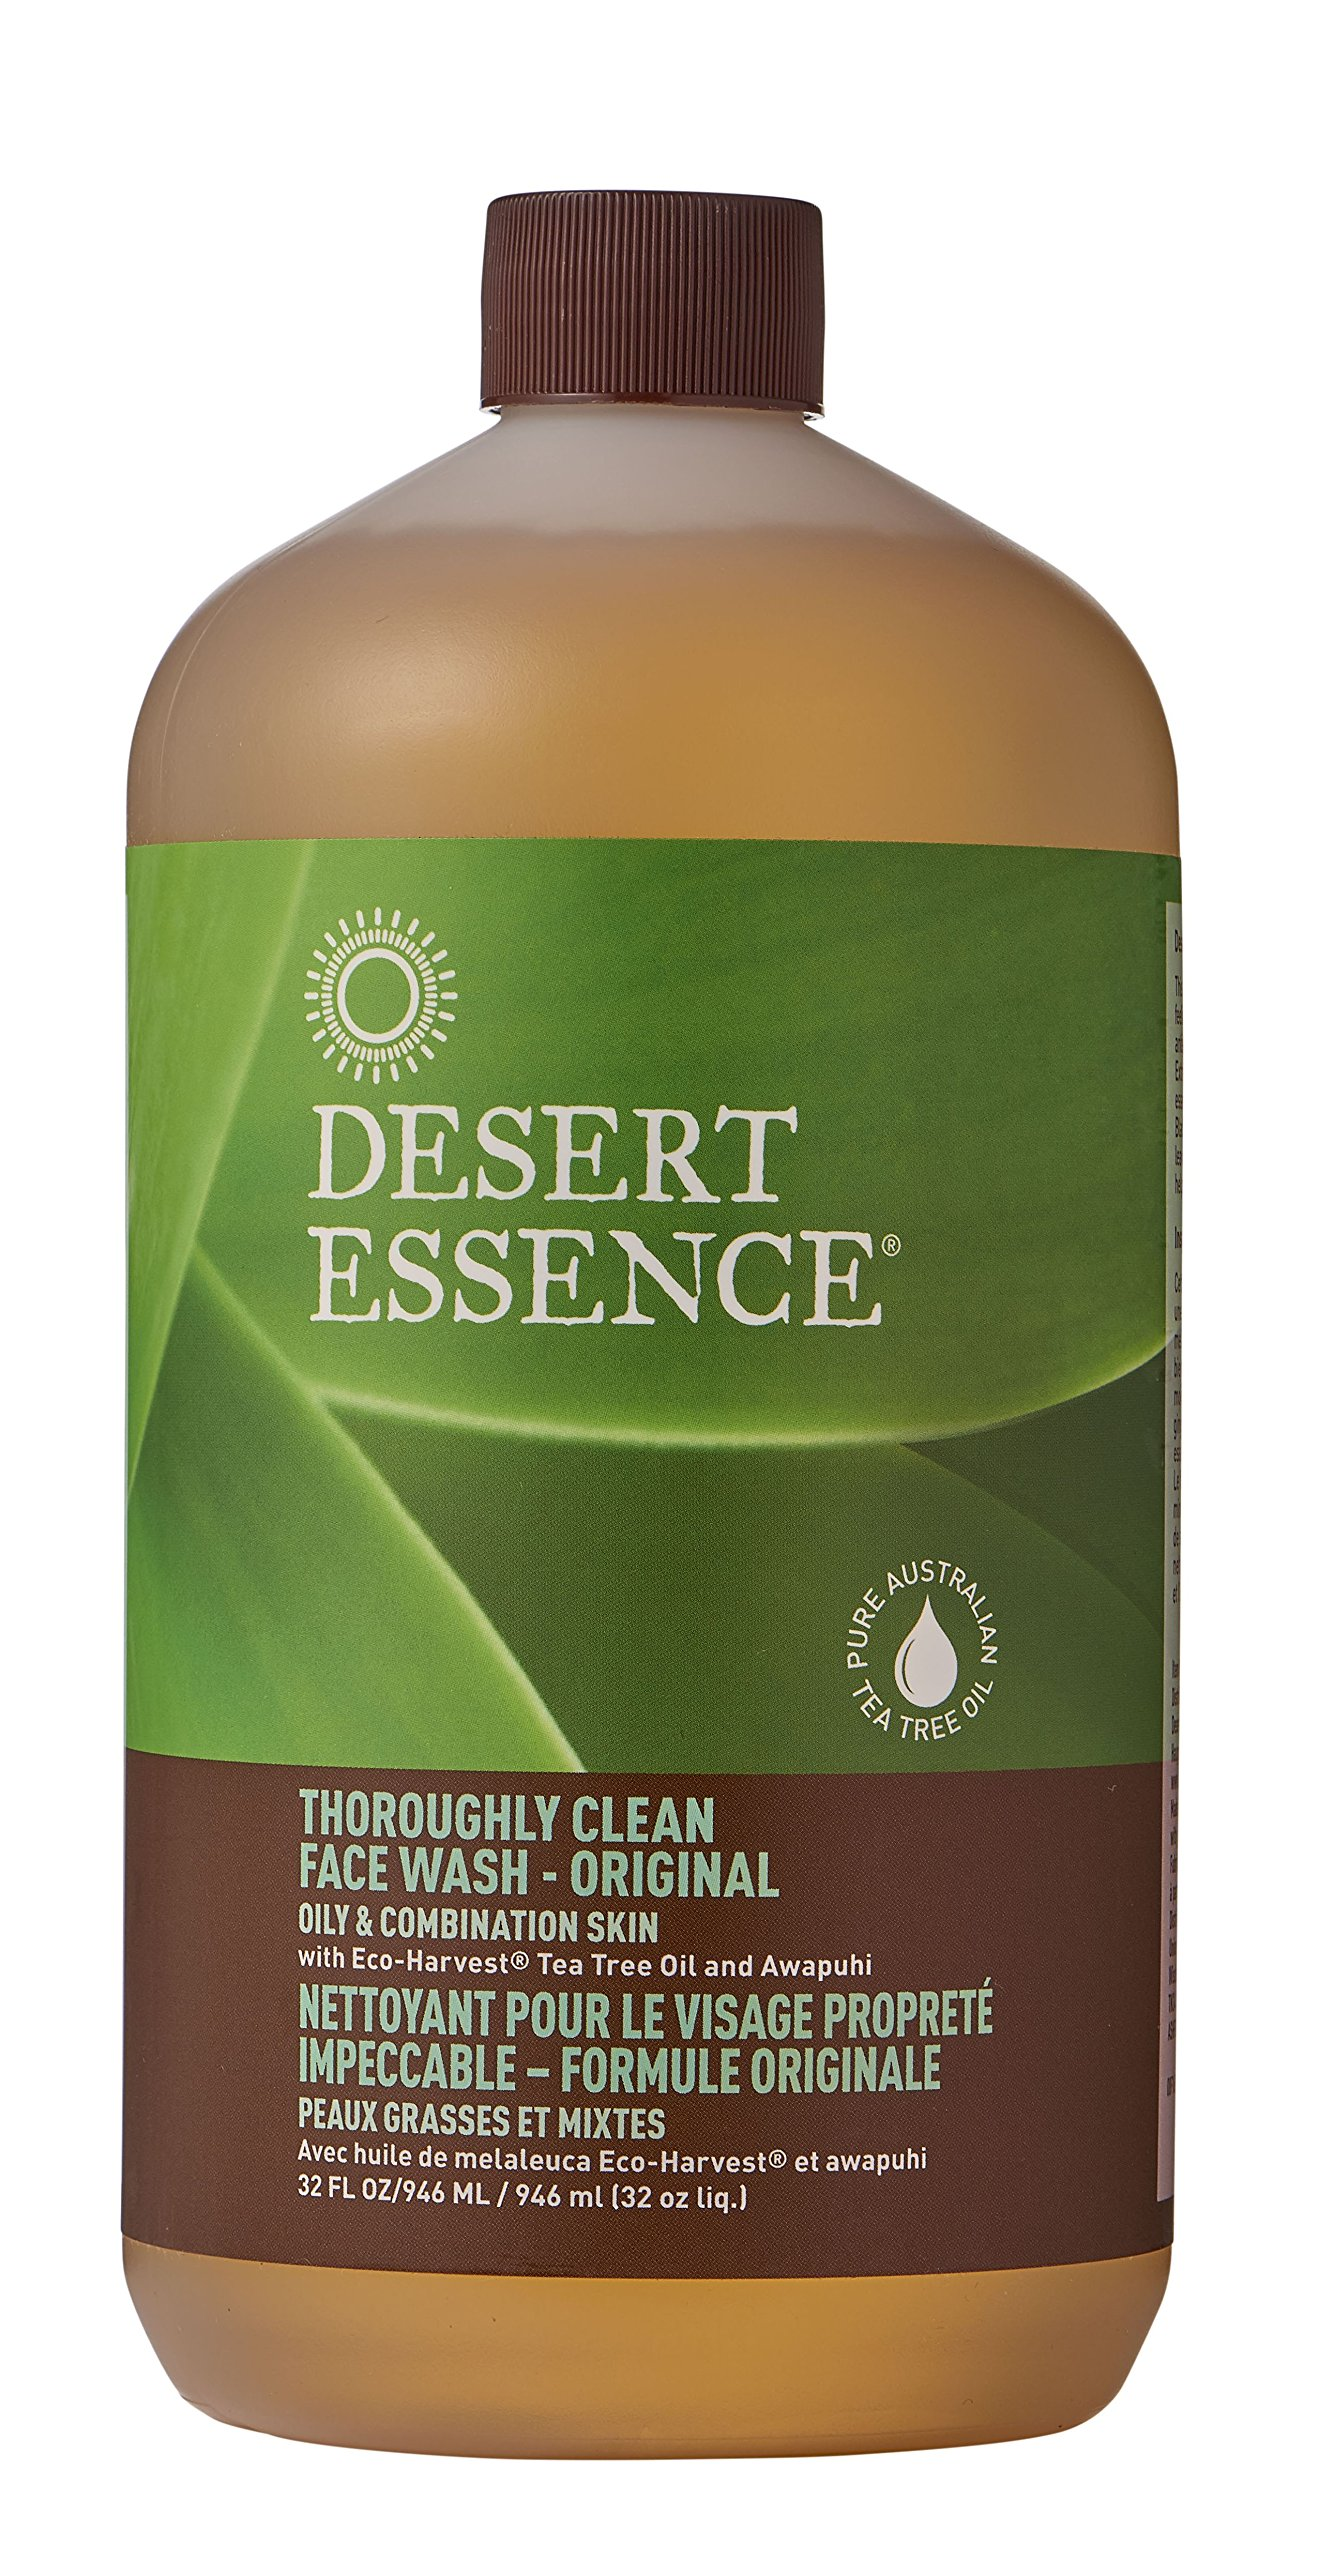 Thoroughly Clean Face Wash Original - 8.5 fl. oz. by Desert Essence (pack of 6) Kama Ayurveda Daily Night Care Regime for Women, 350g